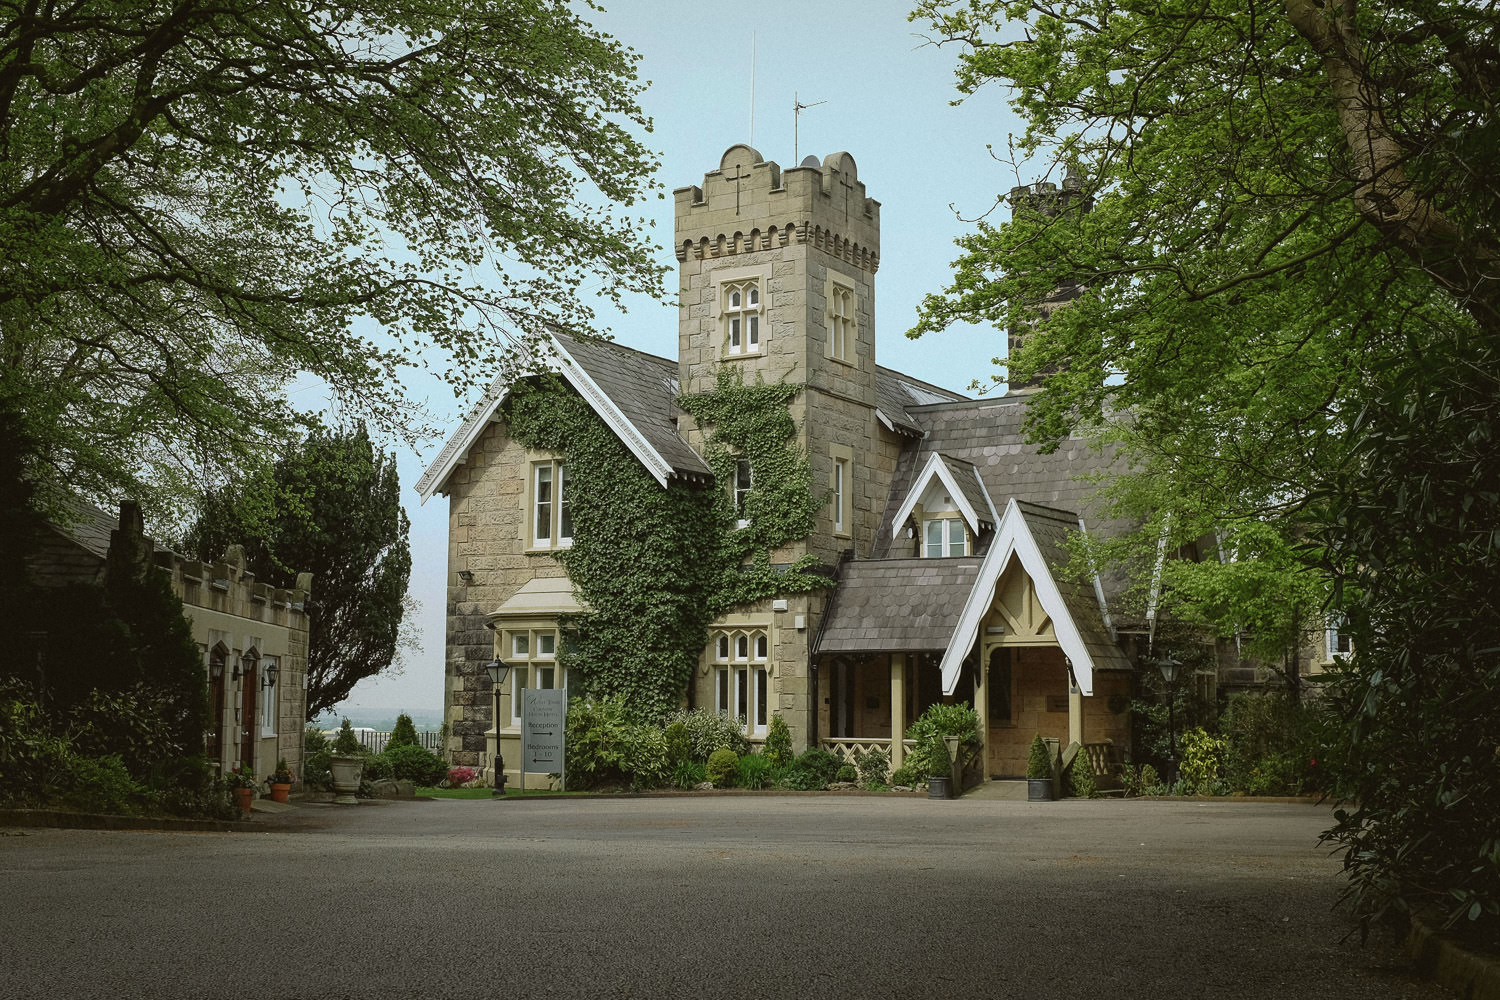 West Tower Aughton wedding venue Lancashire